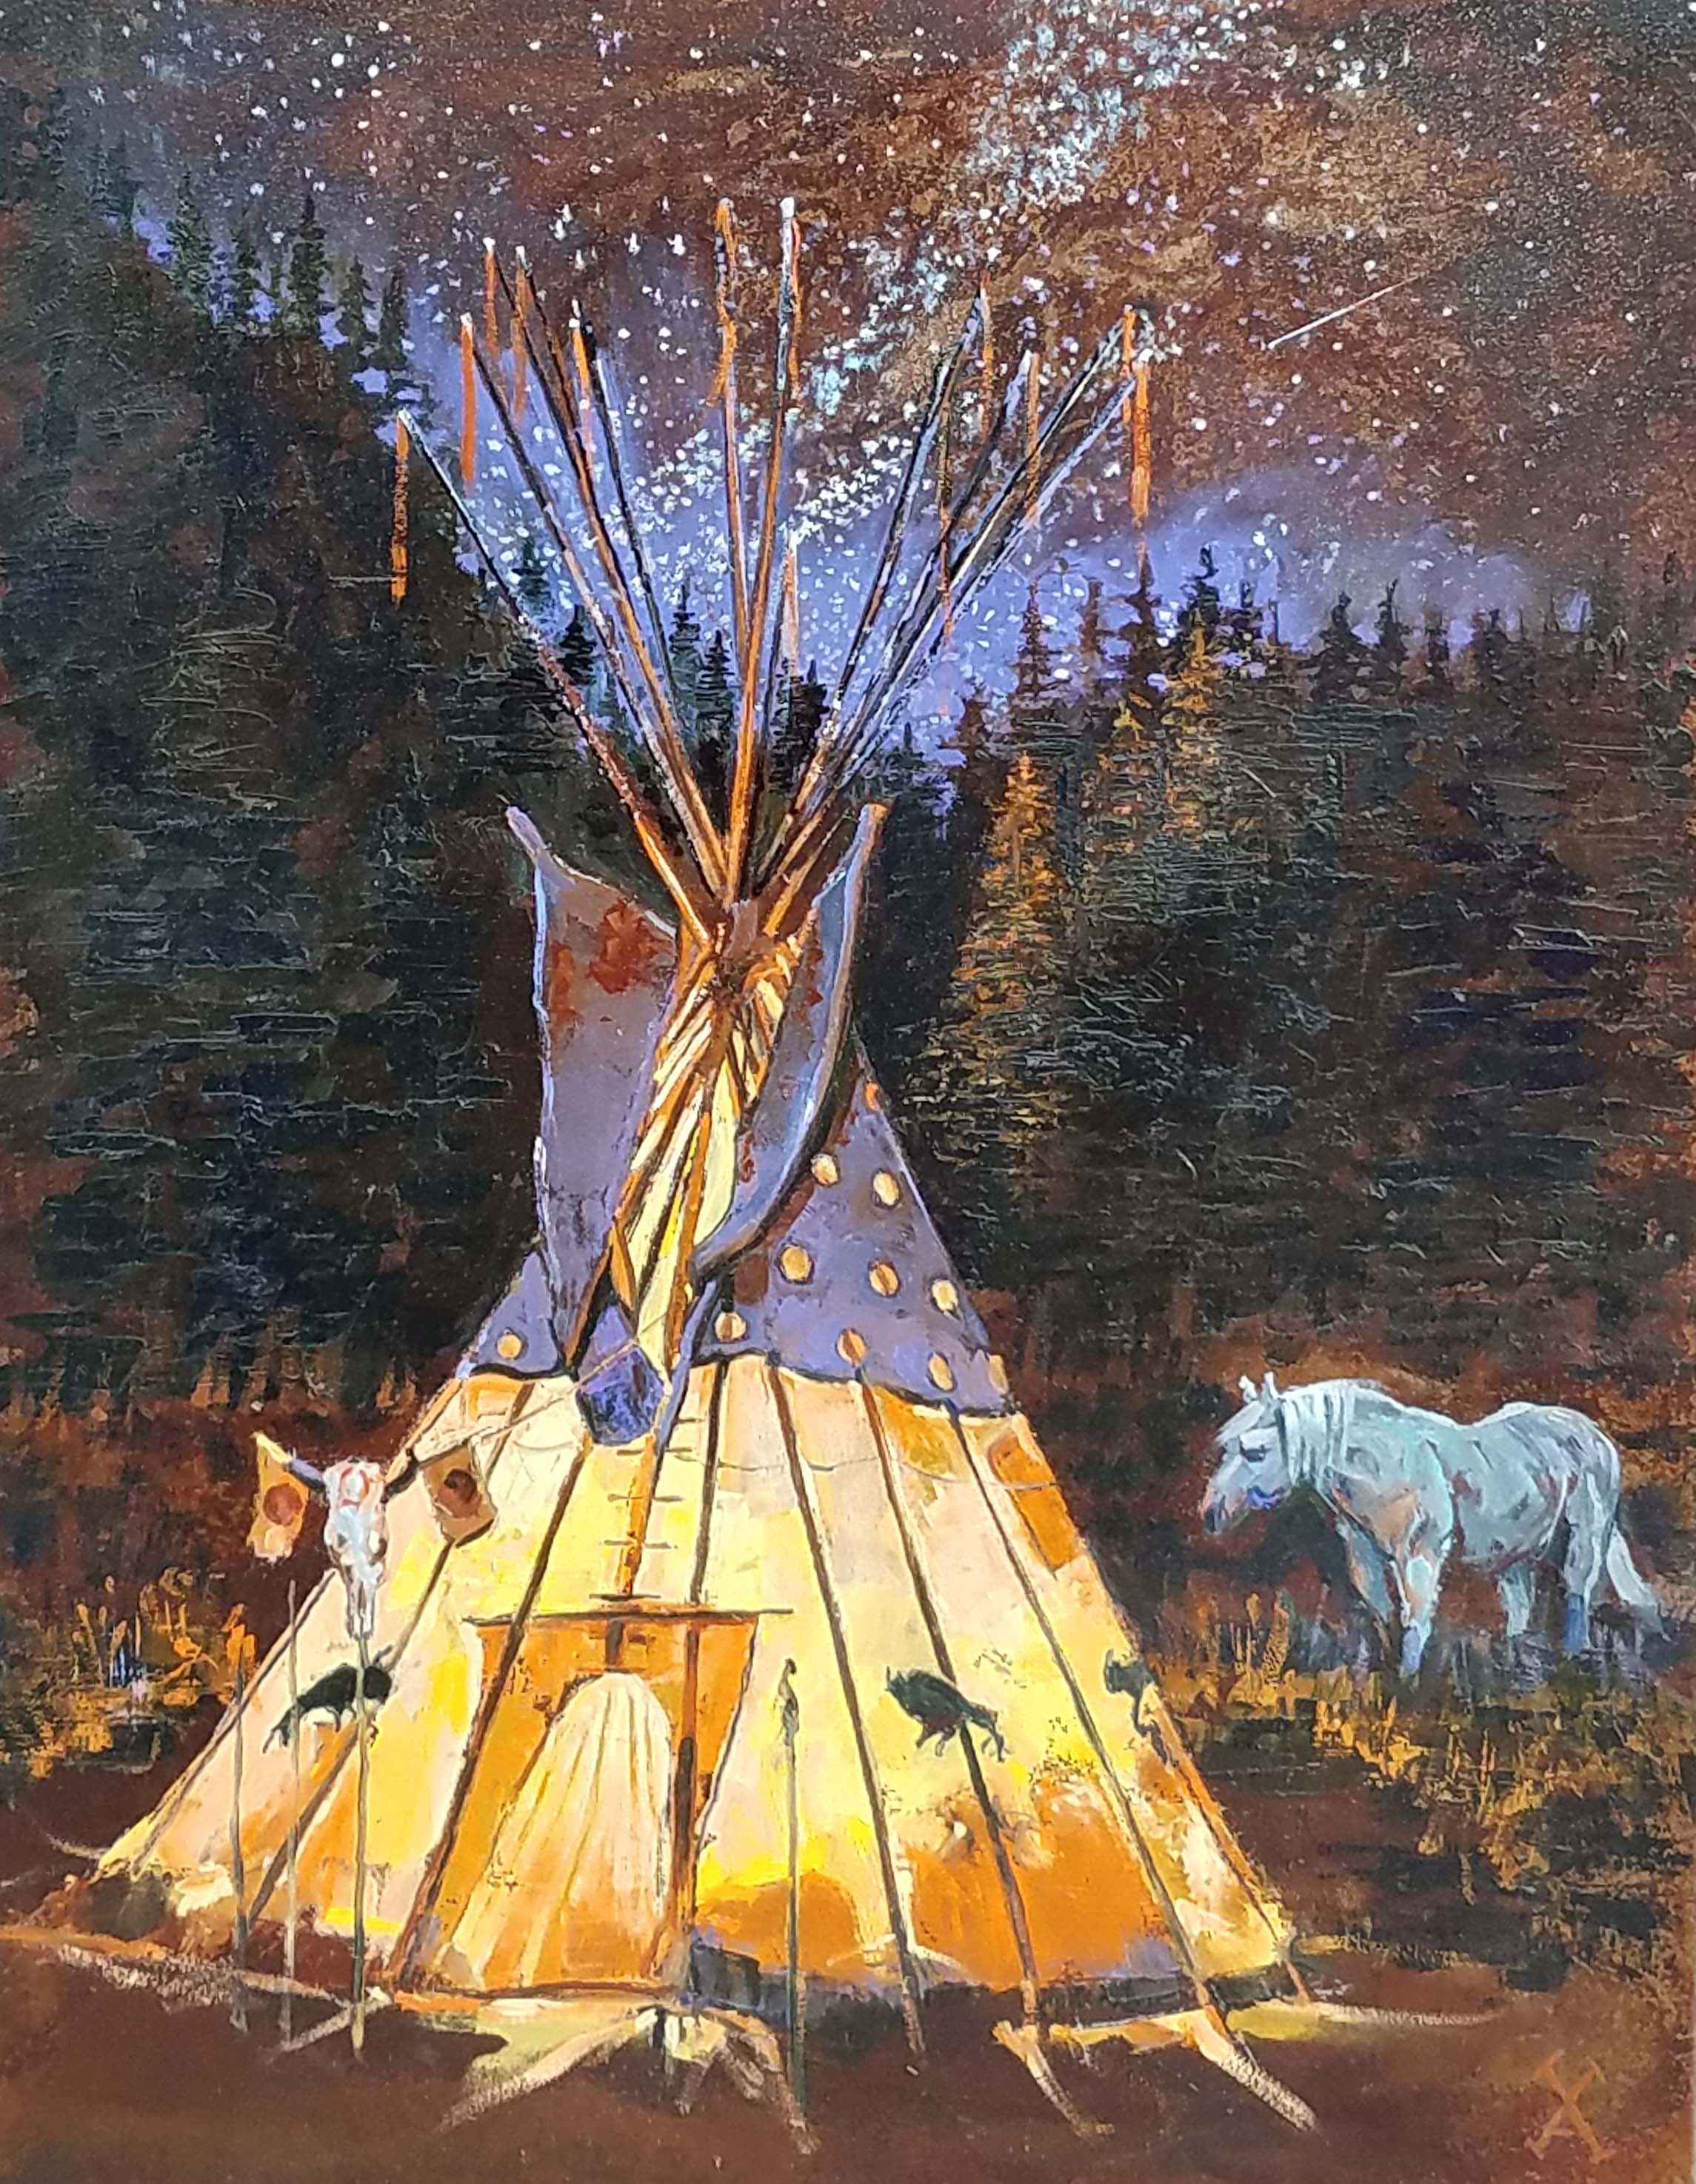 Enchanted Encampment by  David Volsic - Masterpiece Online